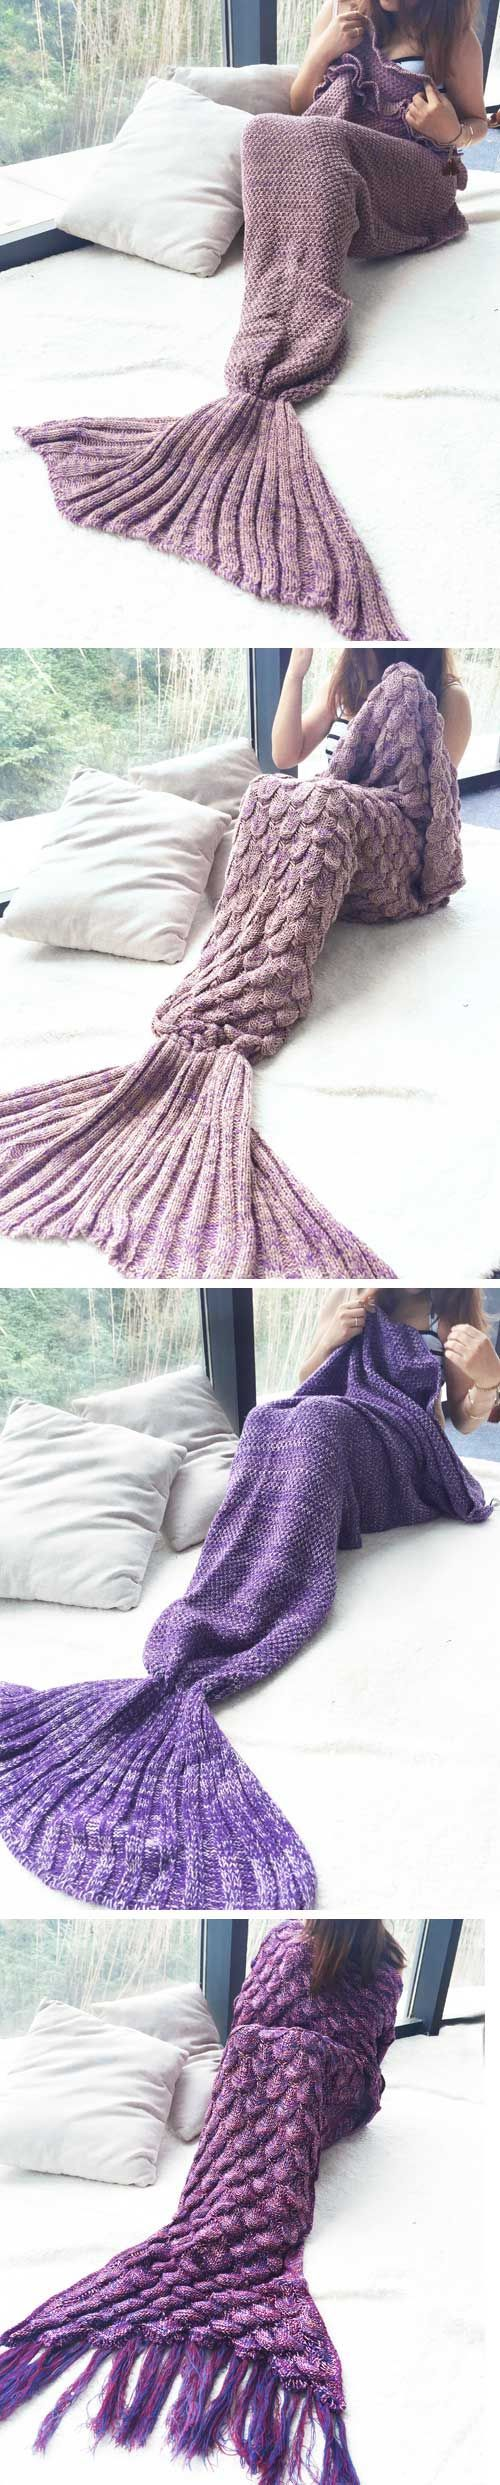 crochet mermaid blanket tutorial youtube video diy diy h keln pinterest meerjungfrau decke. Black Bedroom Furniture Sets. Home Design Ideas